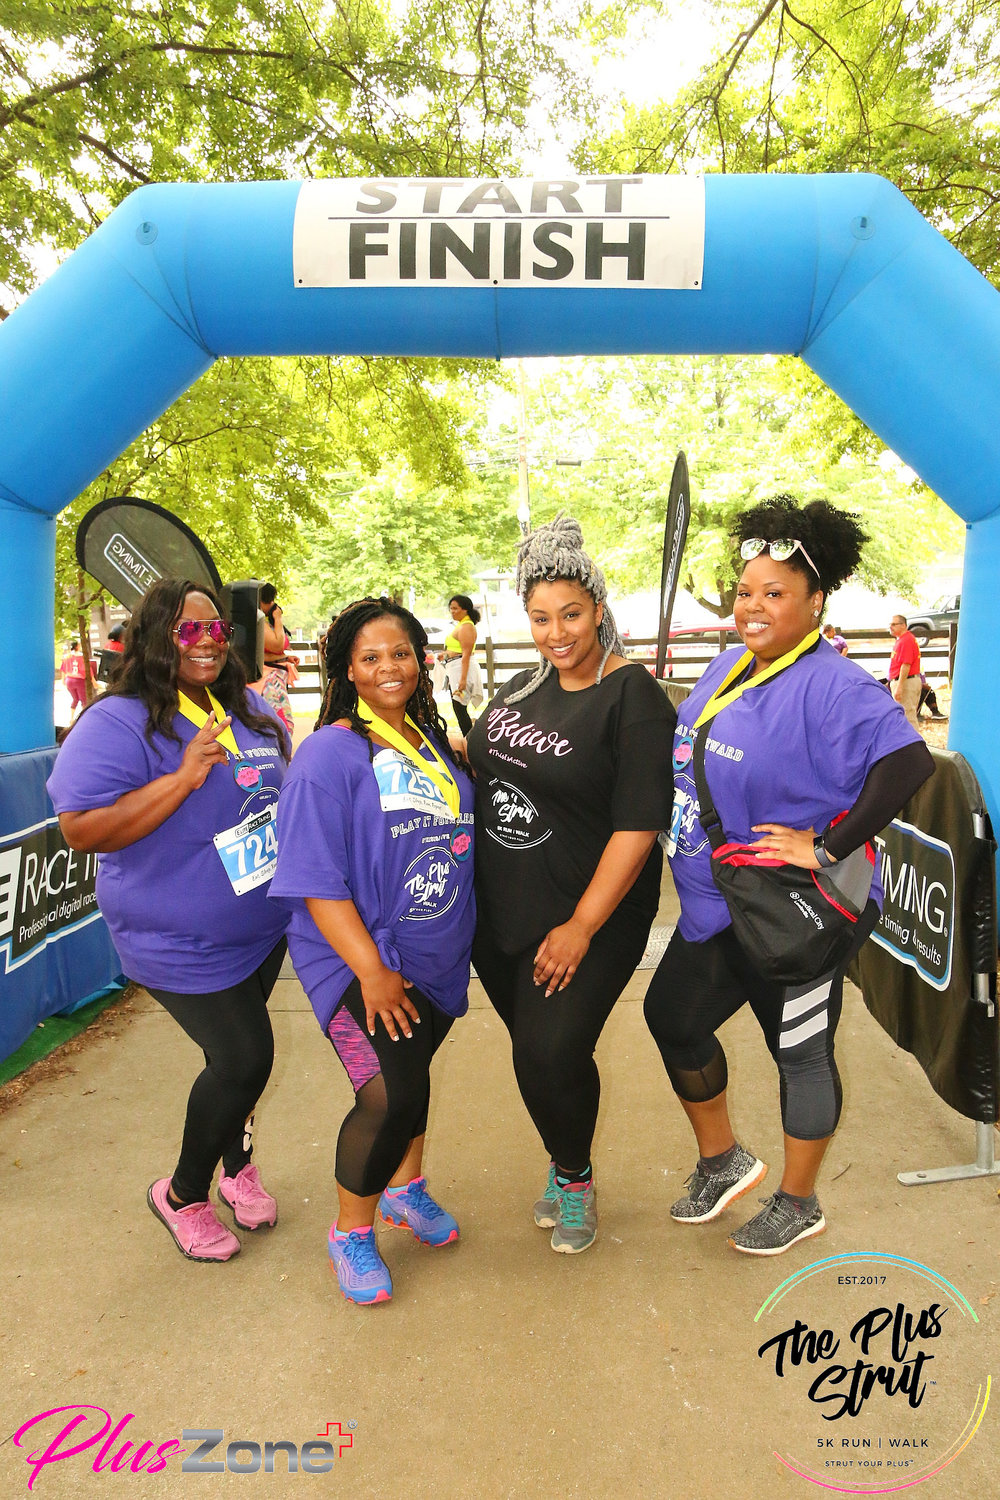 """Influencer Ambassador Program - Calling all bloggers and plus community influencers, you may want to invite your """"GIRL TRIBE"""" to join us for the 5K. You can participate in our Influencer Ambassador Program (I.A.P). Anyone you invite or registers from the code that you promote on your social media pages, about the 5K, can use your dedicated discount code link, to register for the event. The influencer who has the most participants registered under their code, will receive a very special acknowledgement / gift during the 5K event. Exciting right?! Accepted influencers must be willing to promote the 5K on social media platforms and websites and use The Plus Strut 5K™'s curated marketing material to promote the event."""